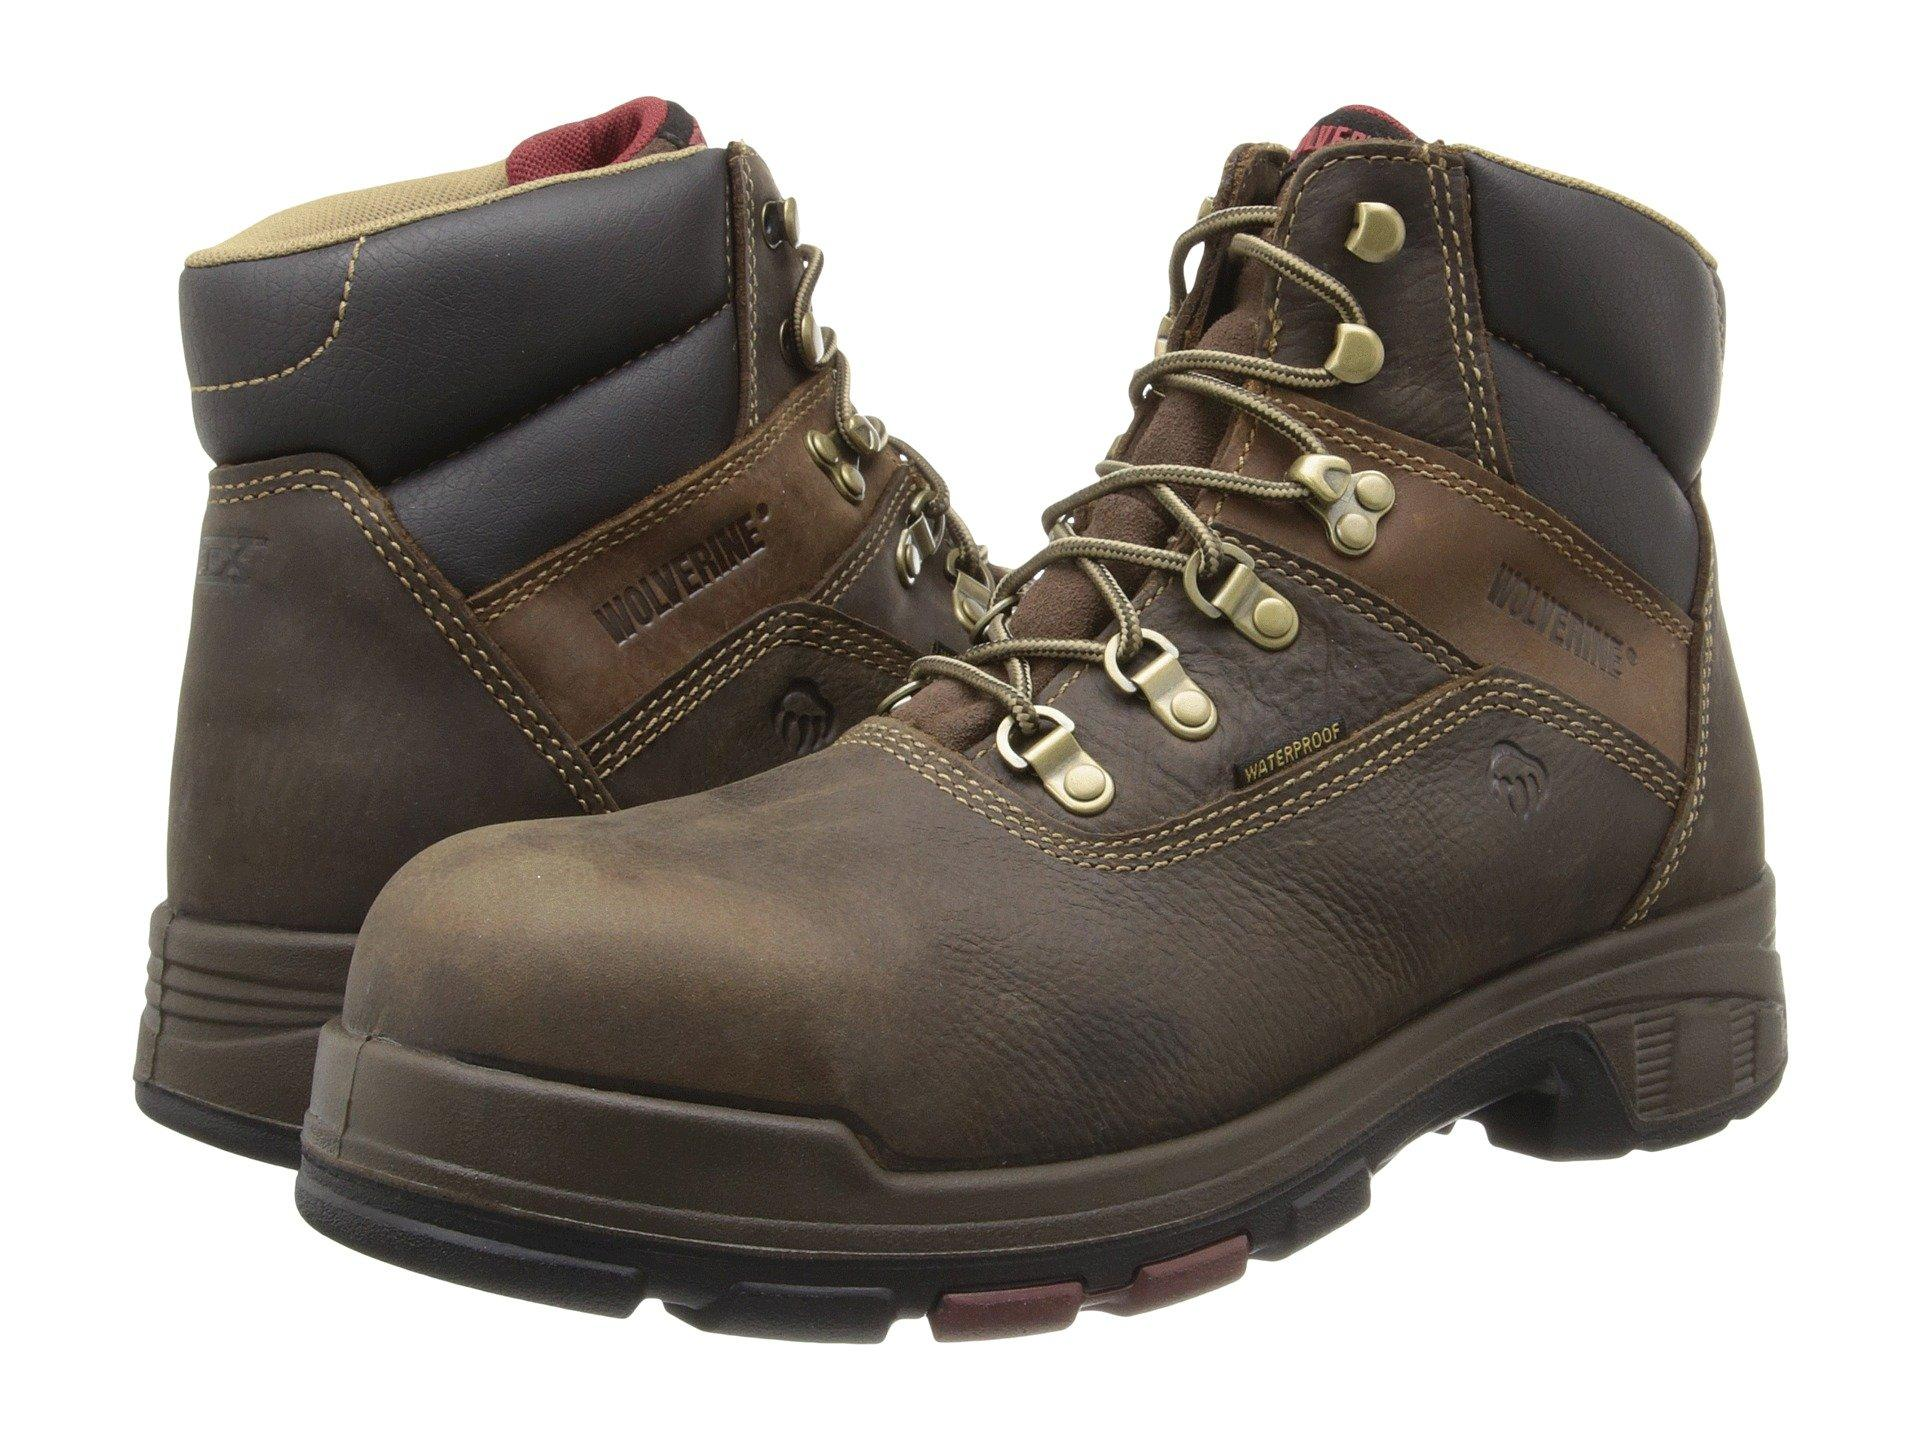 """Wolverine Cabor Epx™ Pc Dry Waterproof 6"""" Boot - Composite Toe In Dark Brown"""